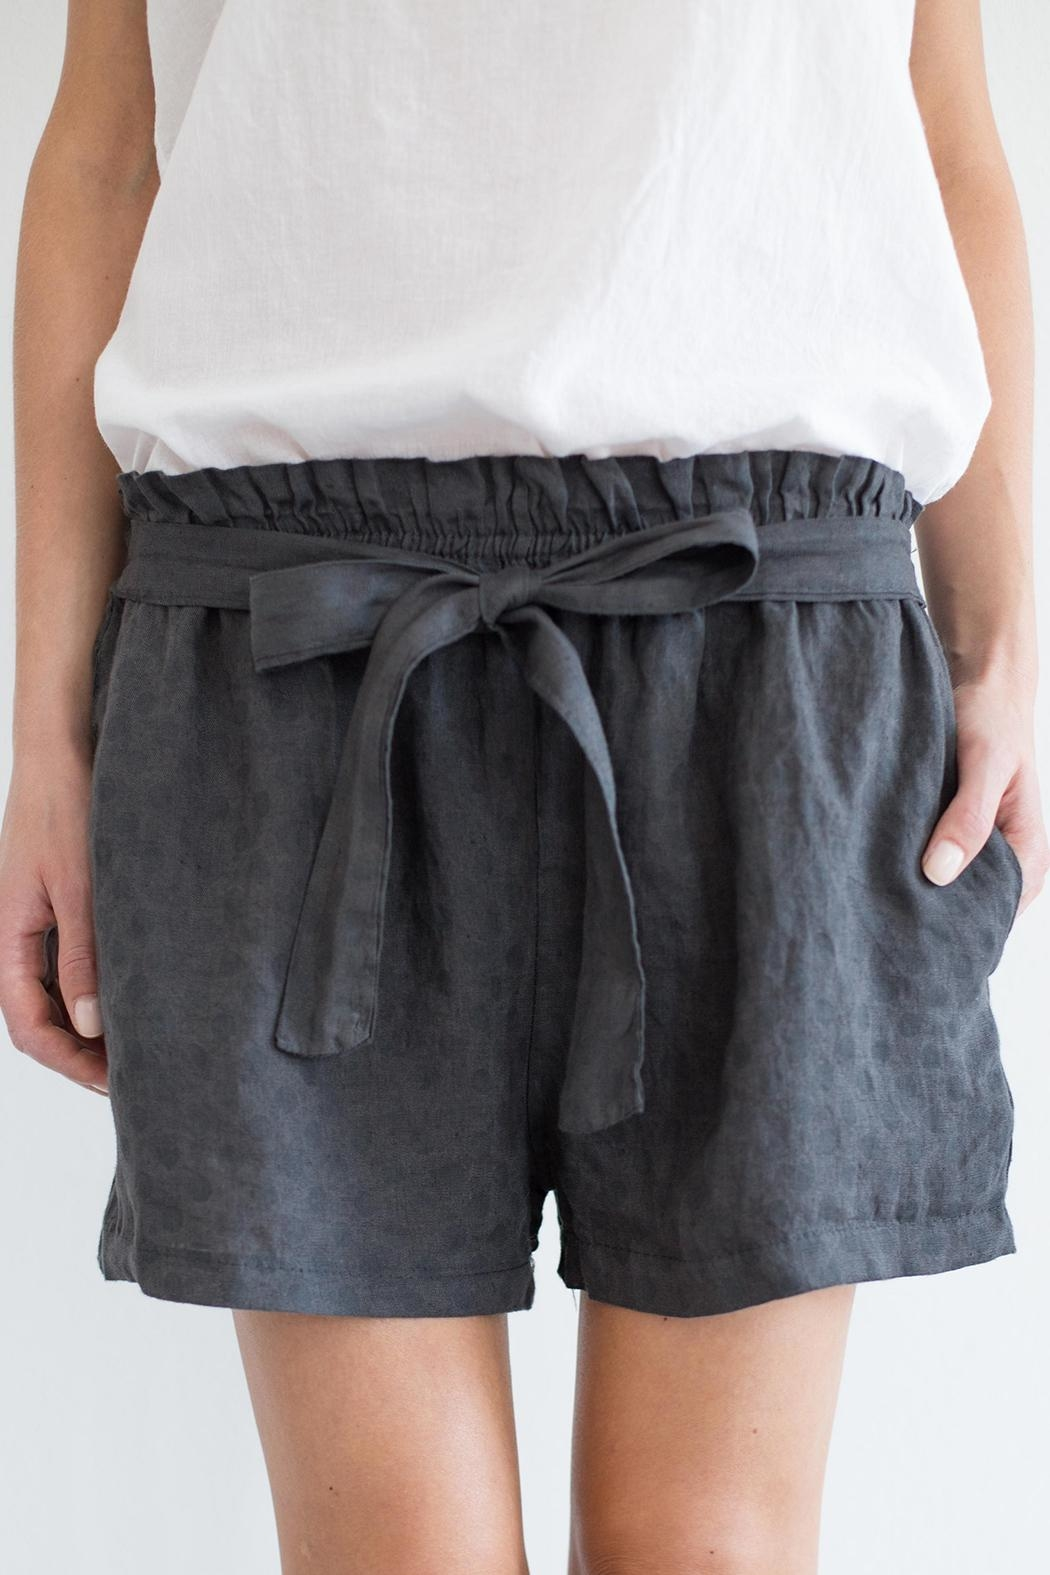 Bianco Concept Store Dark Grey Shorts - Front Cropped Image